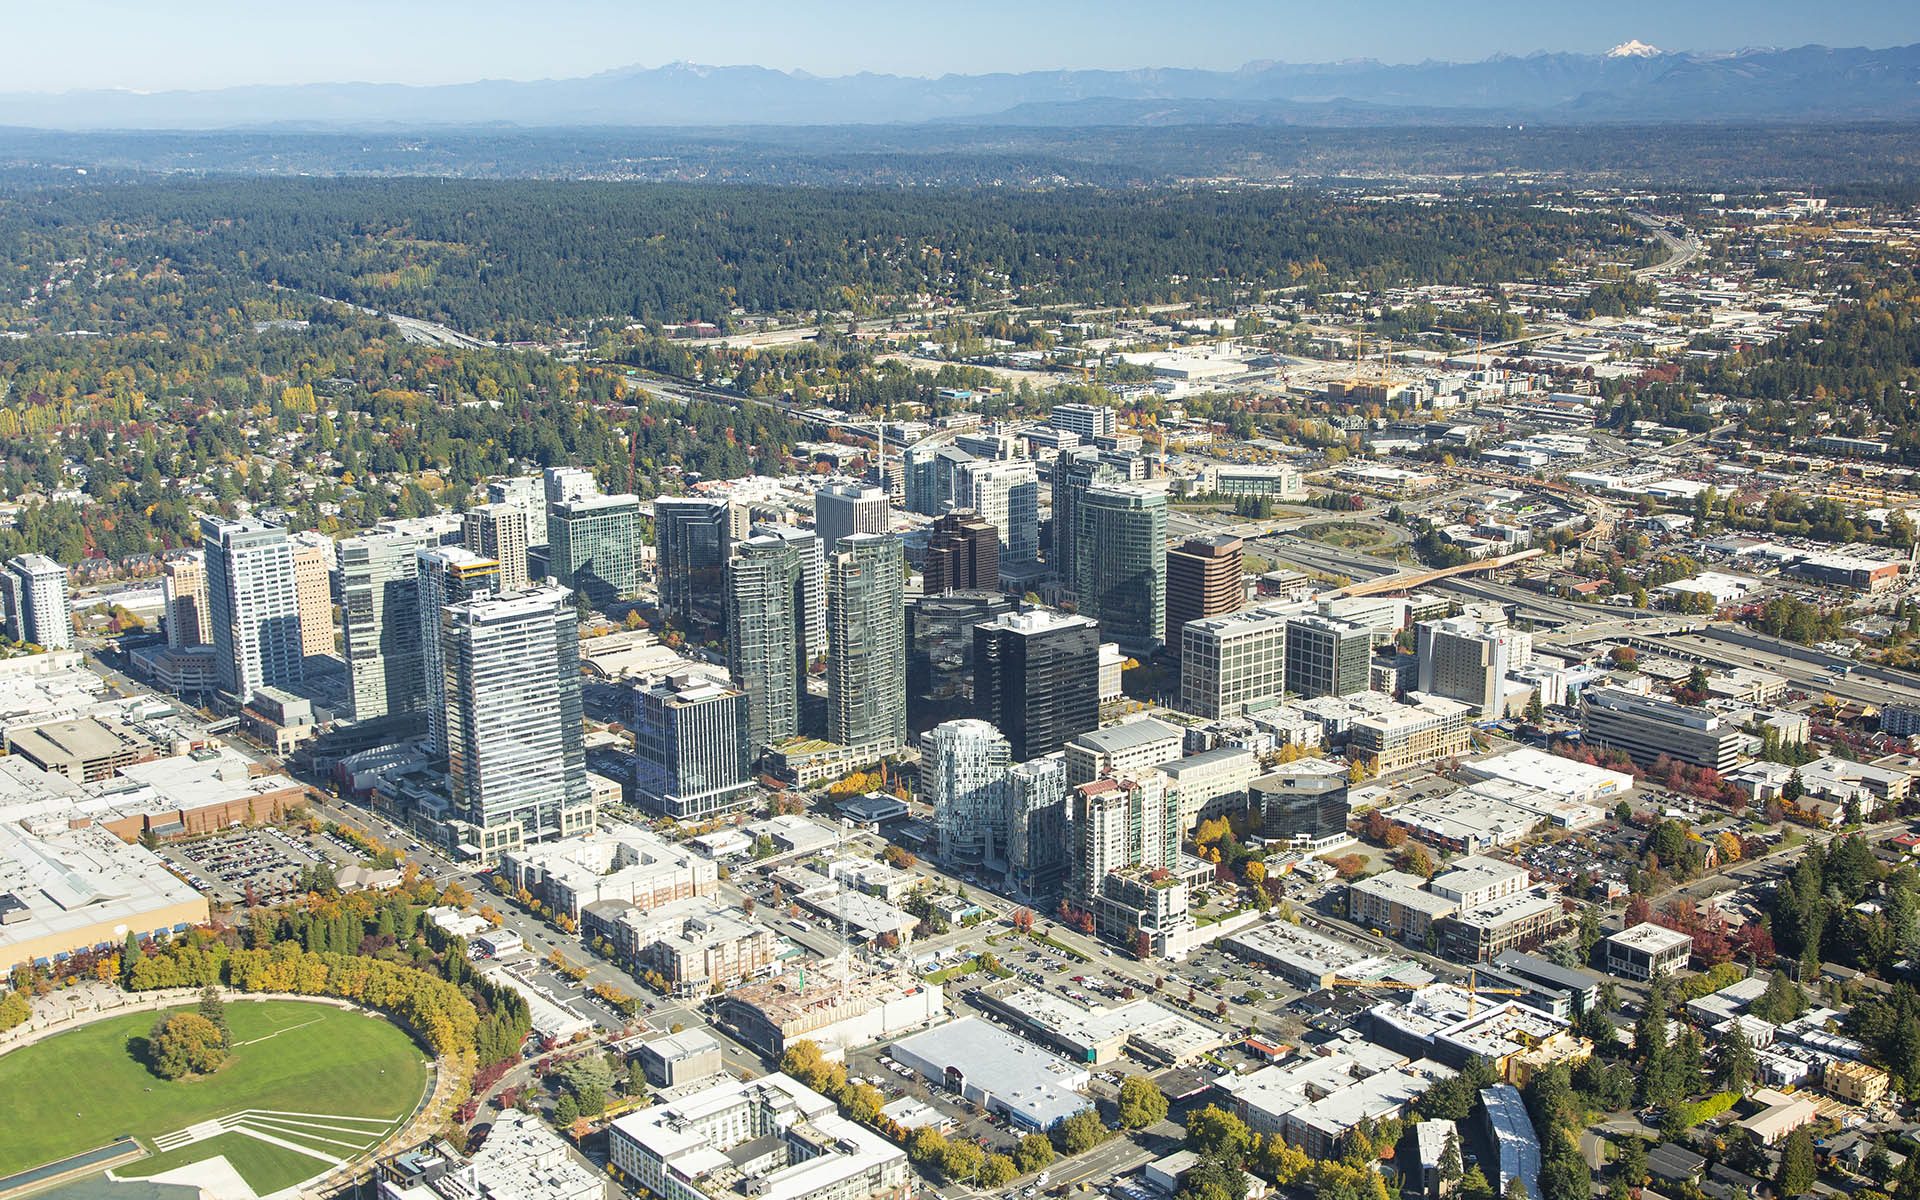 Aerial Image of Downtown Bellevue